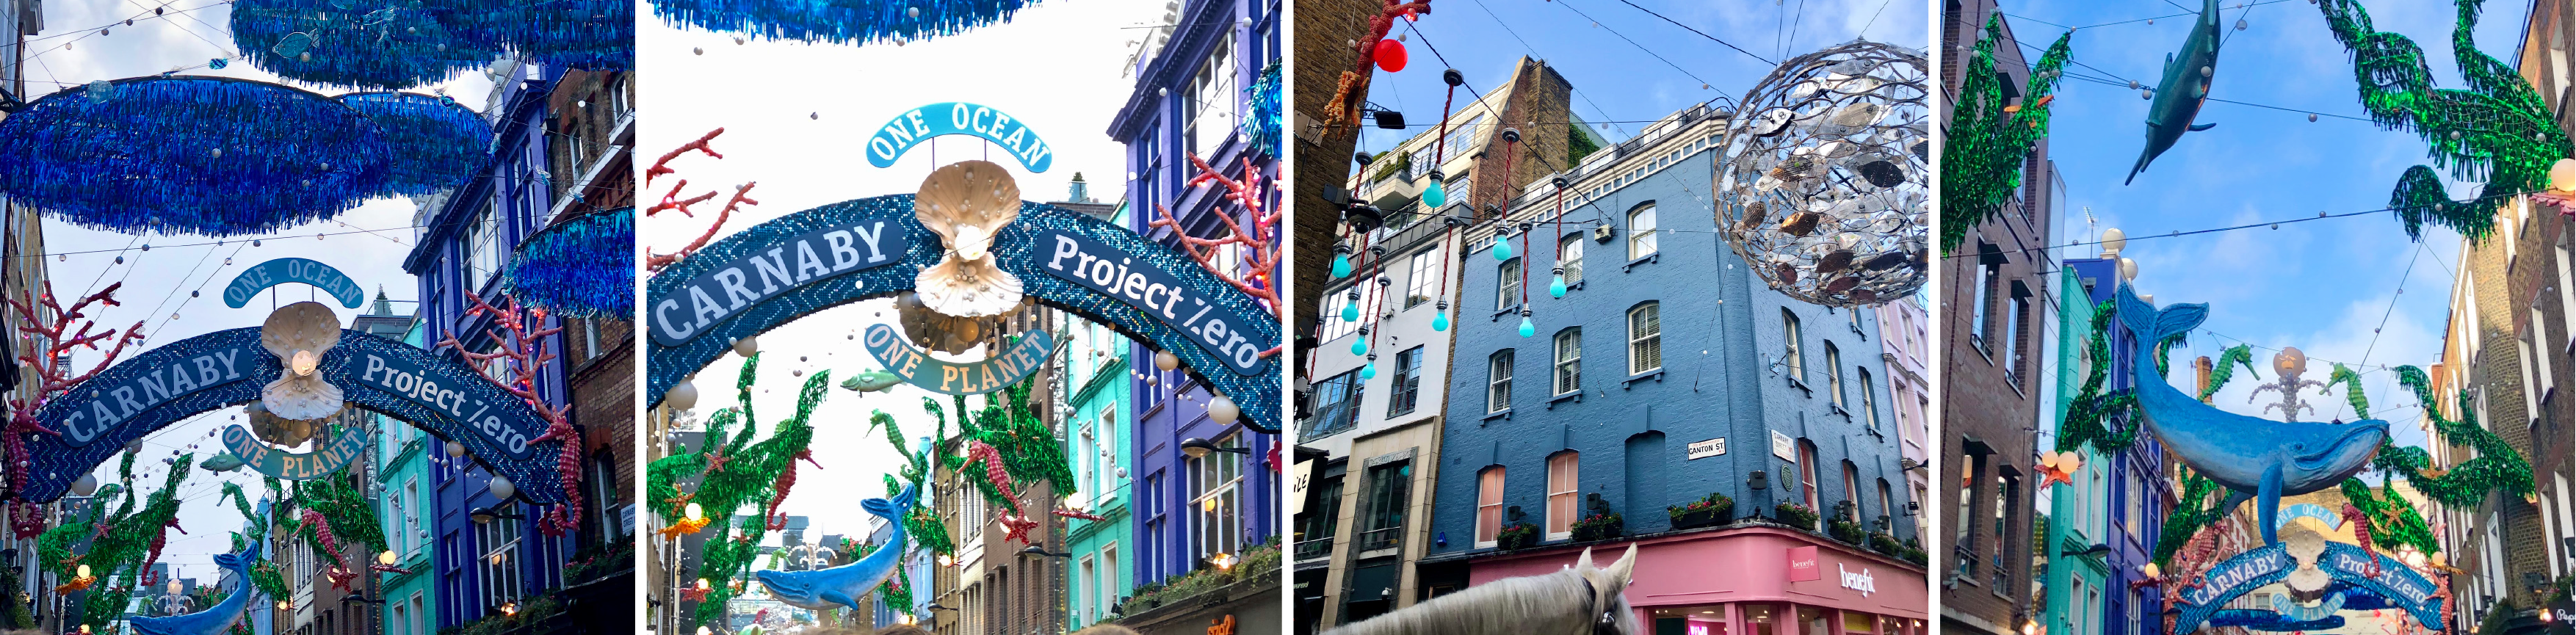 Collage of project zero decorations on Carnaby street in london